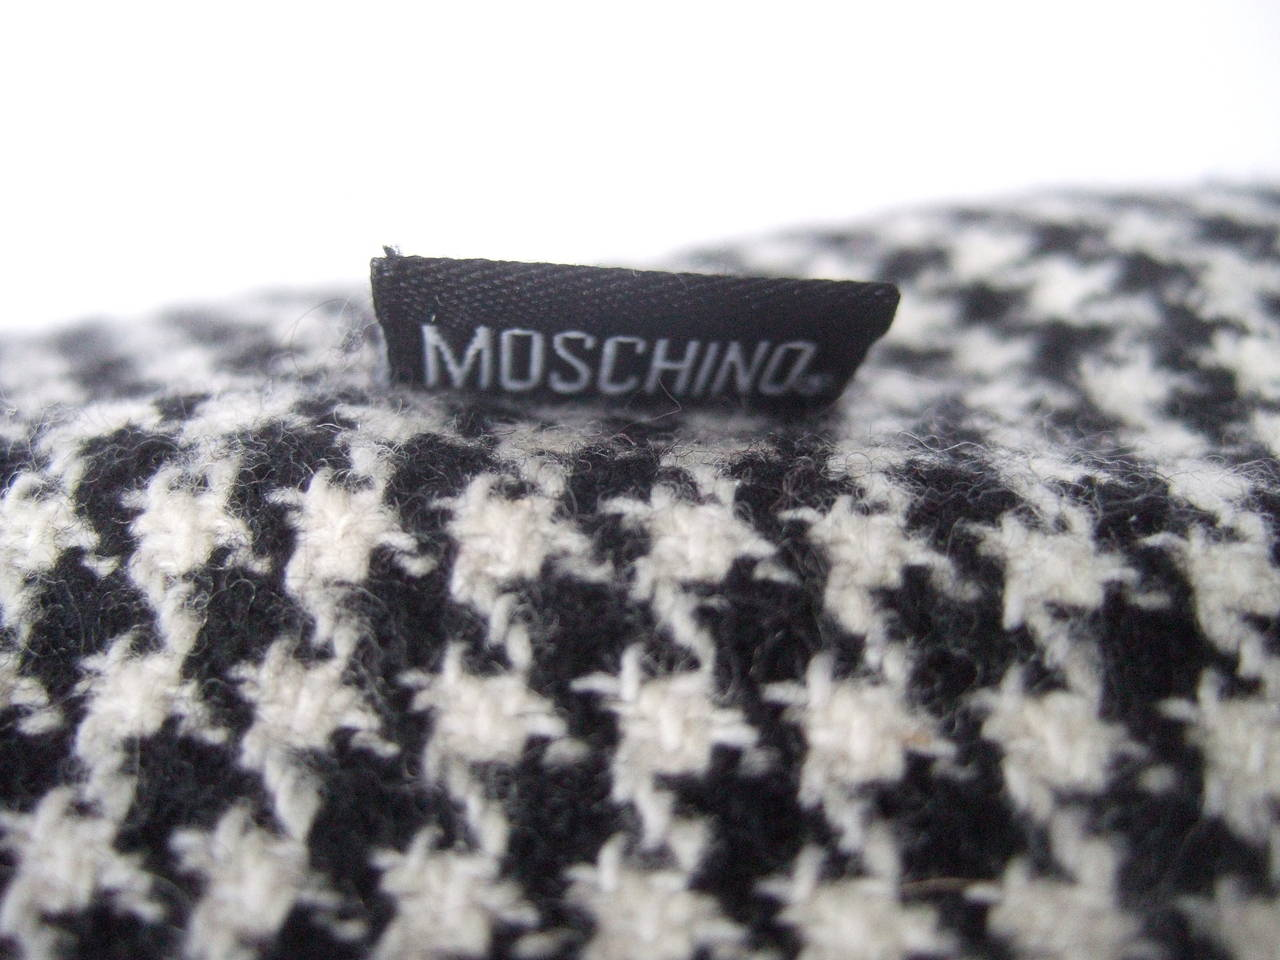 Moschino Mod Op Art Lolita Hounds Tooth Wool Skirt US Size 8 Made in Italy For Sale 4